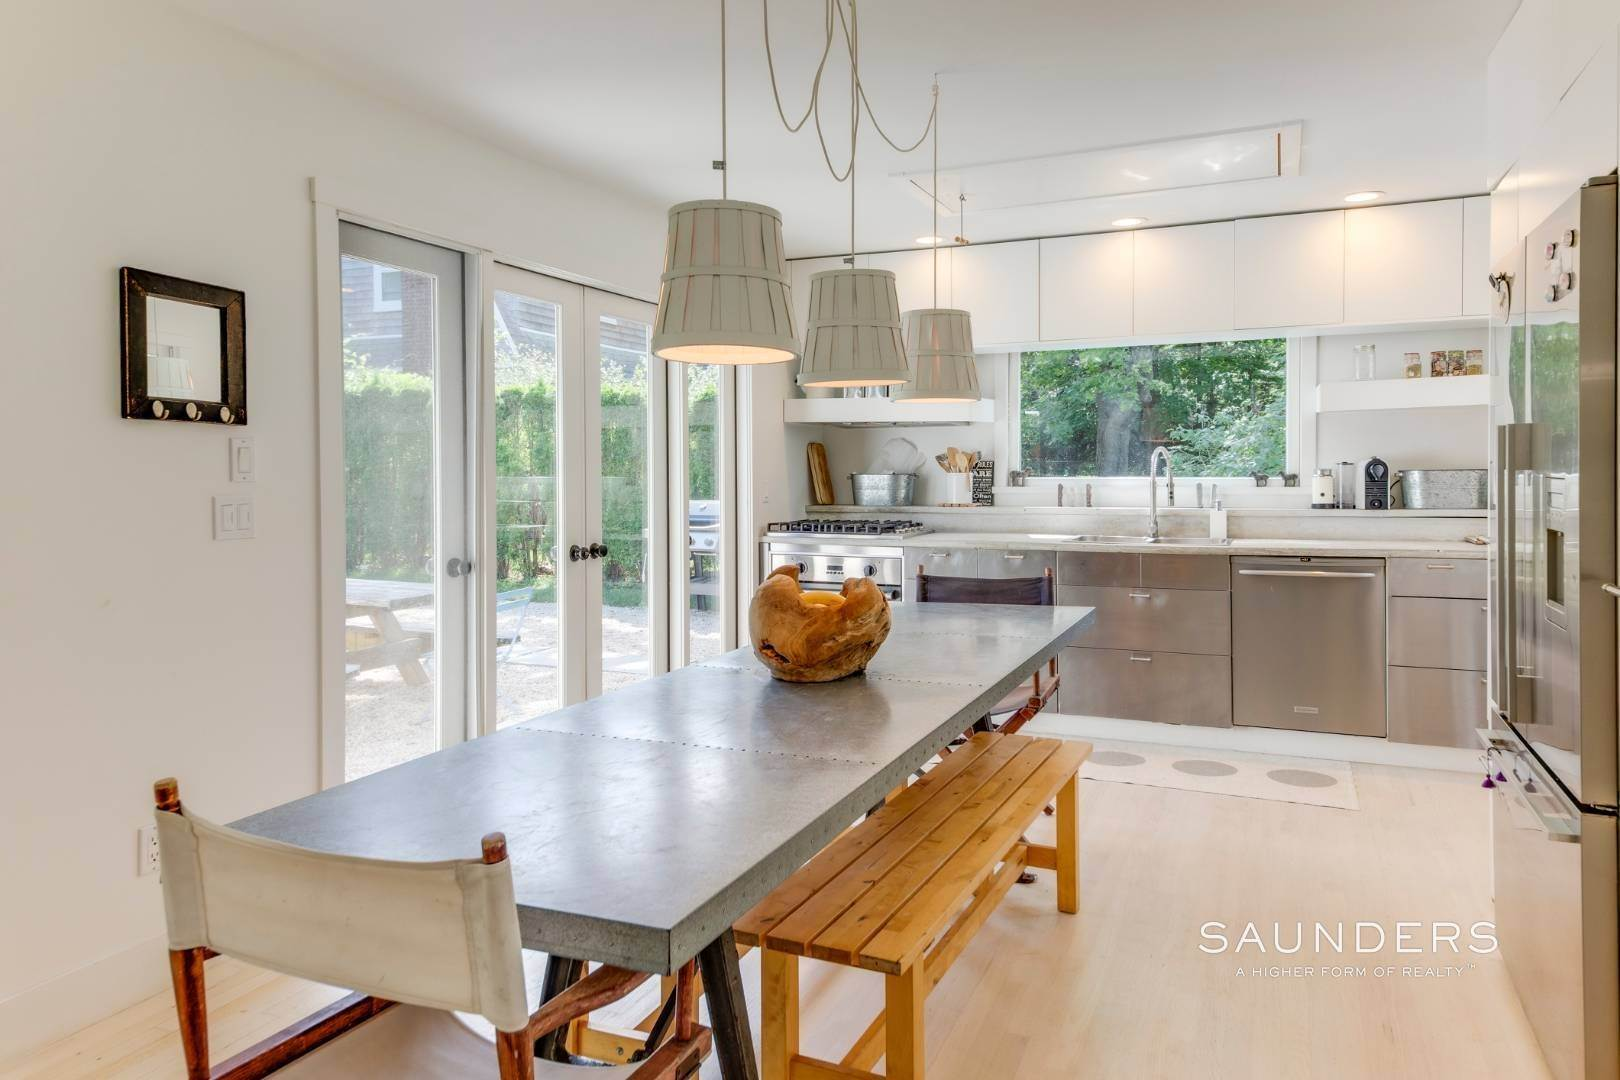 7. Single Family Homes for Sale at South Of Highway - Turnkey Charmer 136 Cove Hollow Road, East Hampton, East Hampton Town, NY 11937